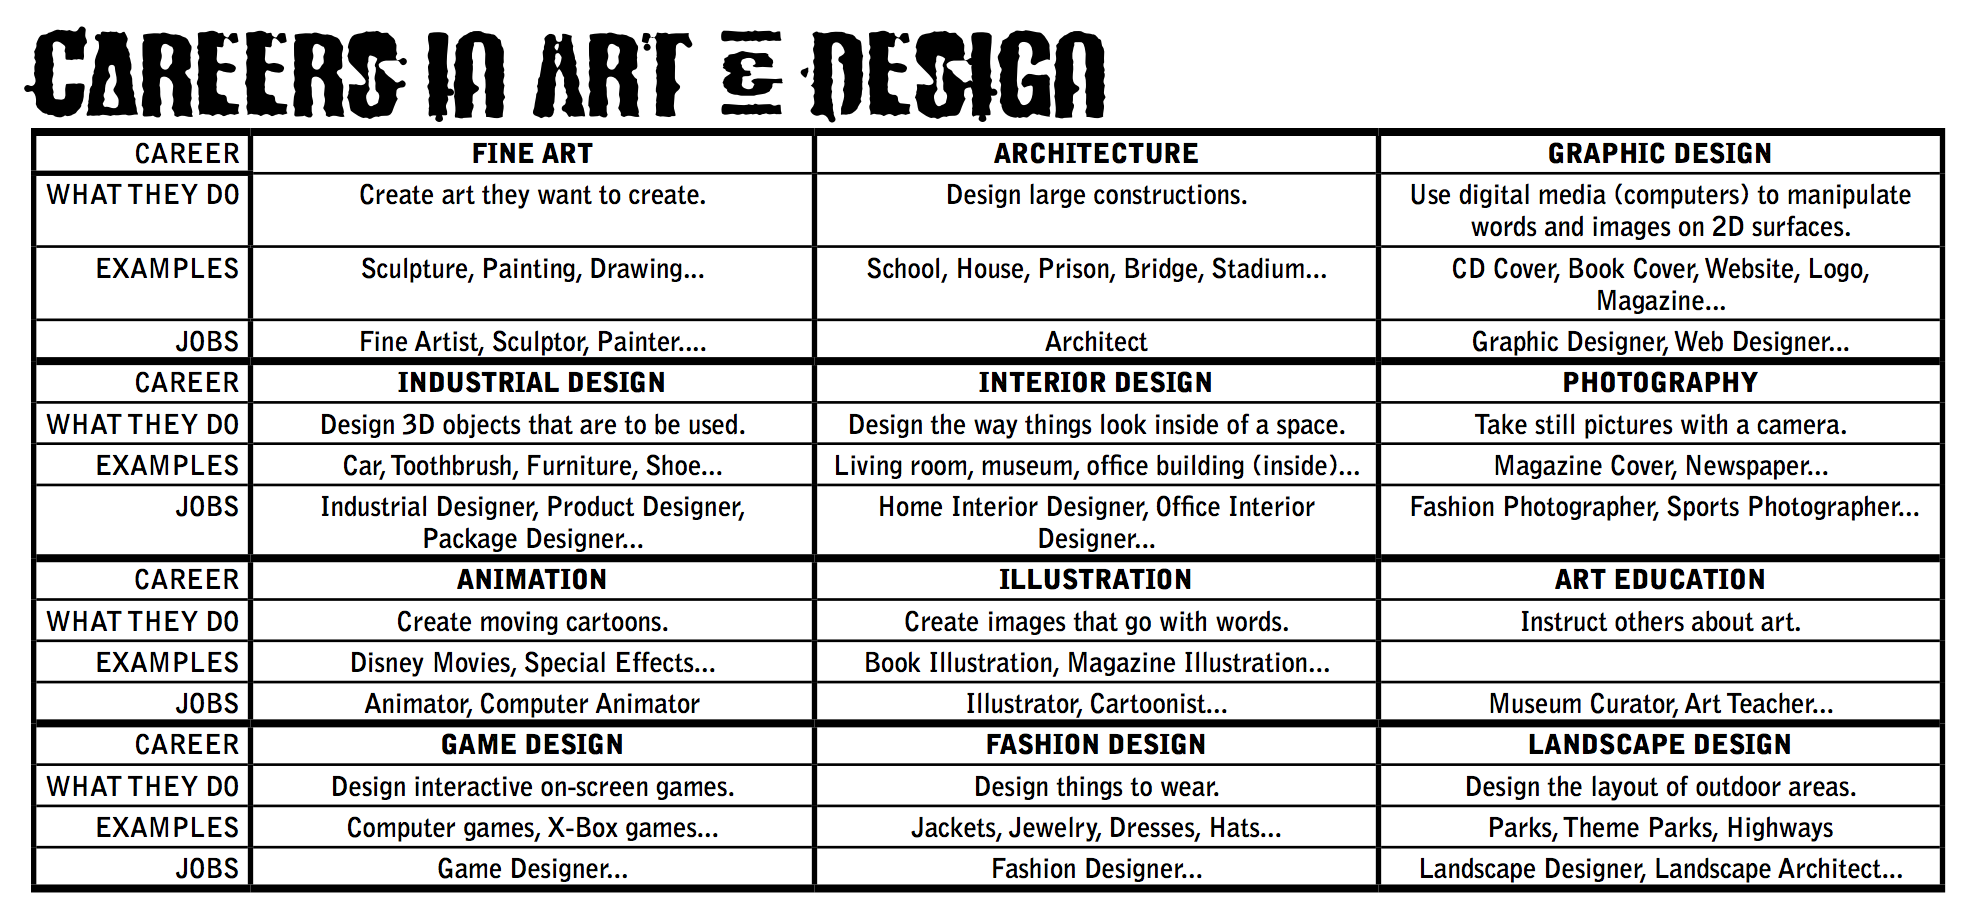 careers career related jobs arts studio options brief example resources resource visual level department